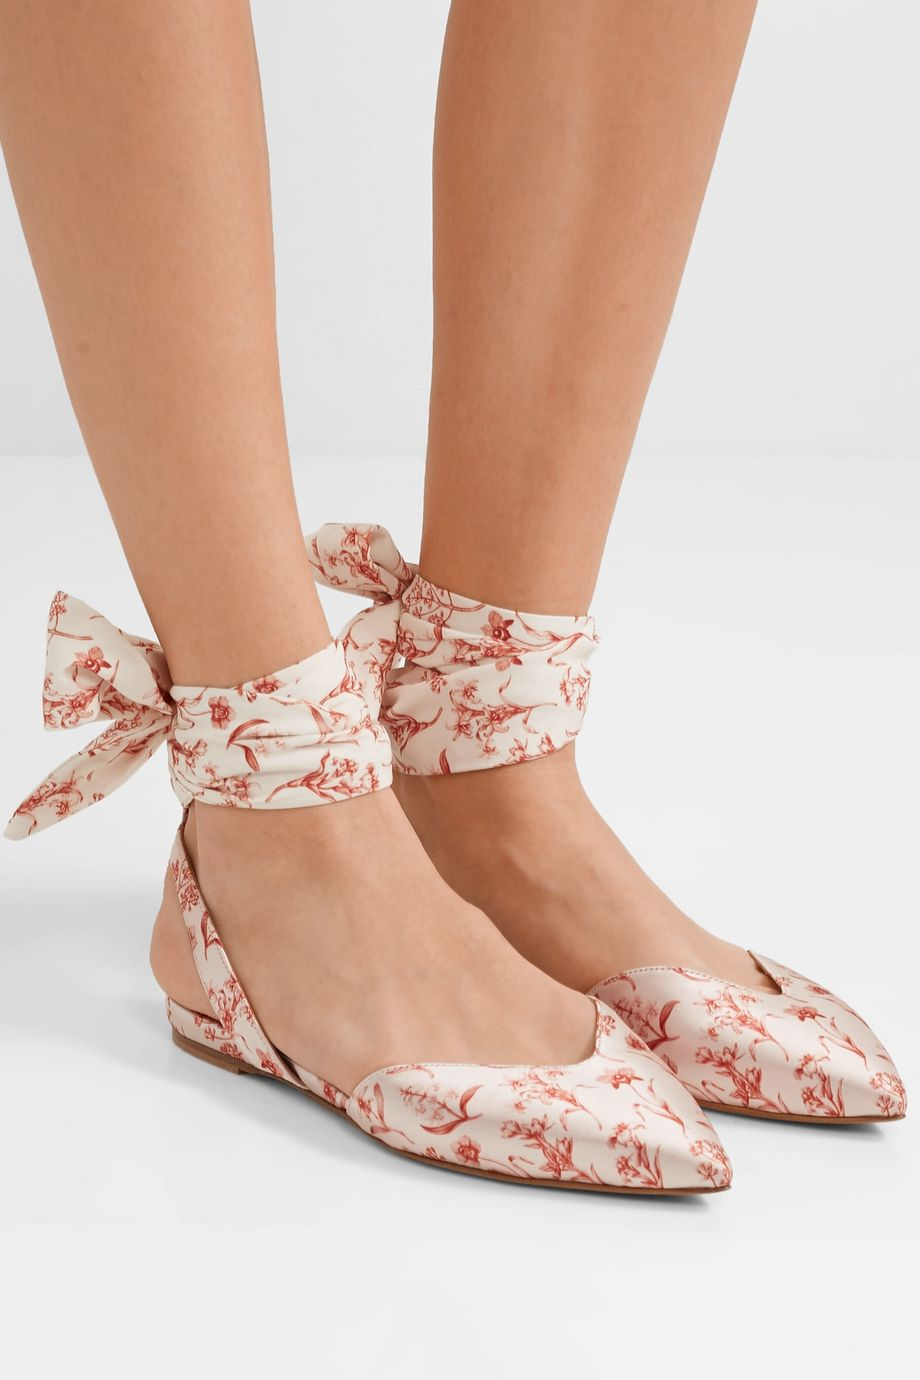 Tabitha Simmons + Johanna Ortiz Vera printed silk-satin and crepe de chine point-toe flats